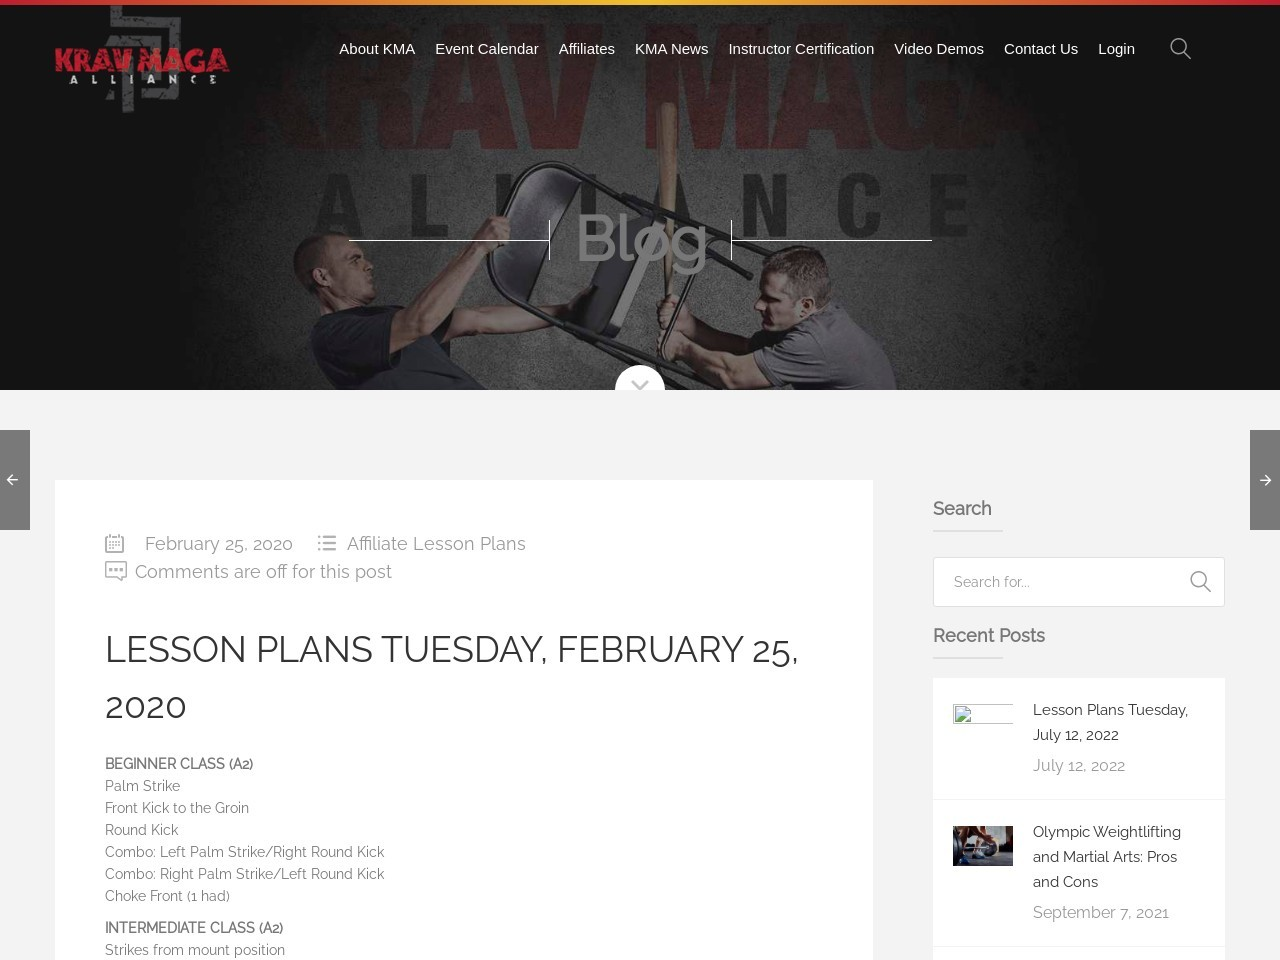 Lesson Plans Tuesday, February 25, 2020